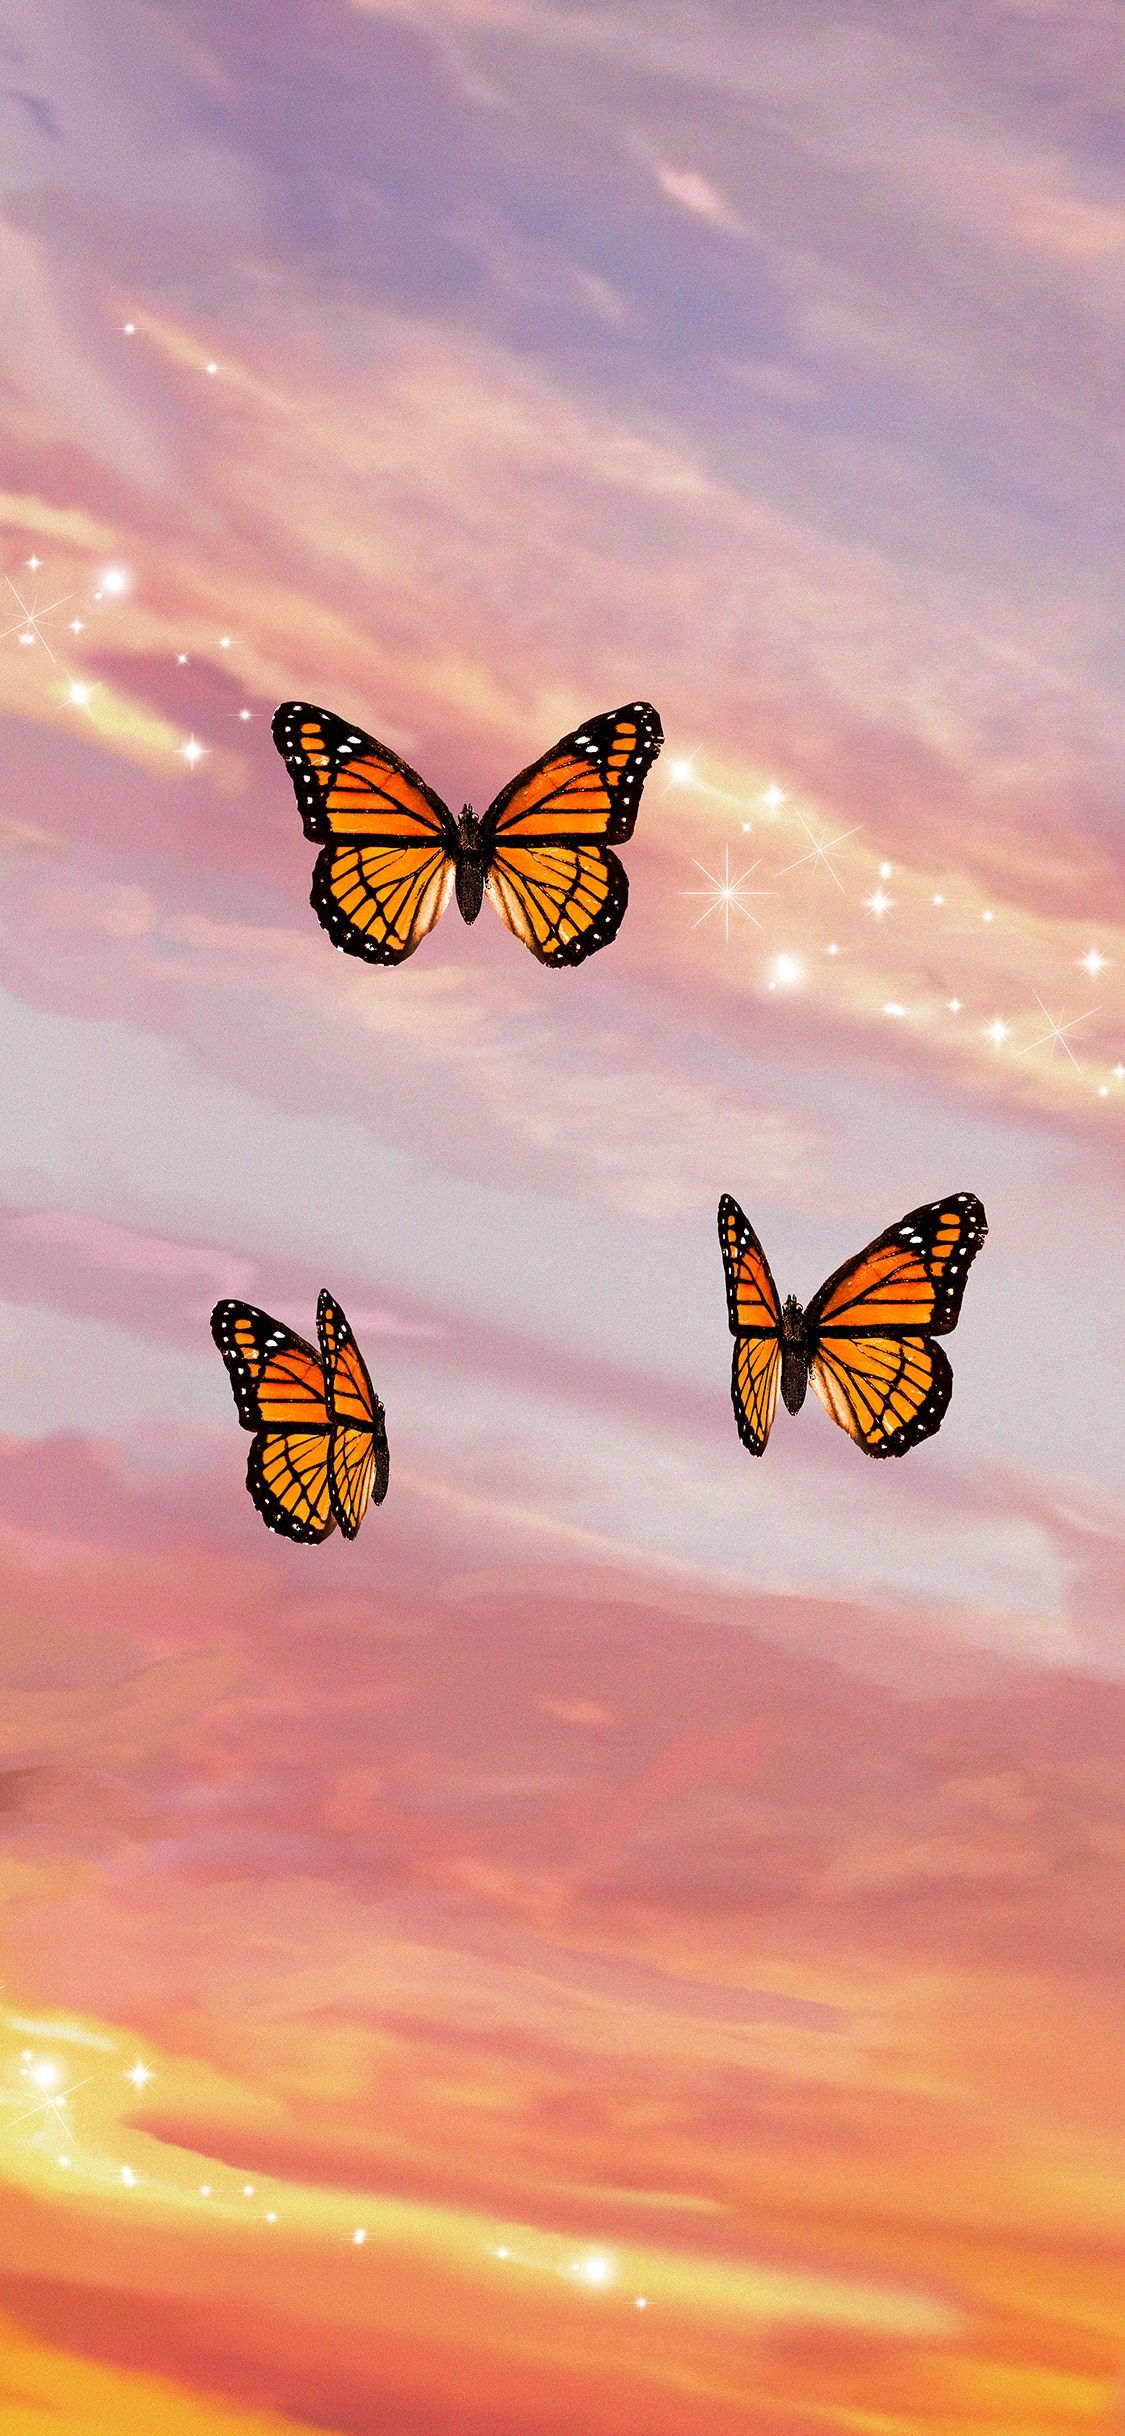 Butterfly Sunset Aesthetic Iphone Case By Trajeado14 In 2020 Butterfly Wallpaper Butterfly Wallpaper Iphone Iphone Wallpaper Tumblr Aesthetic